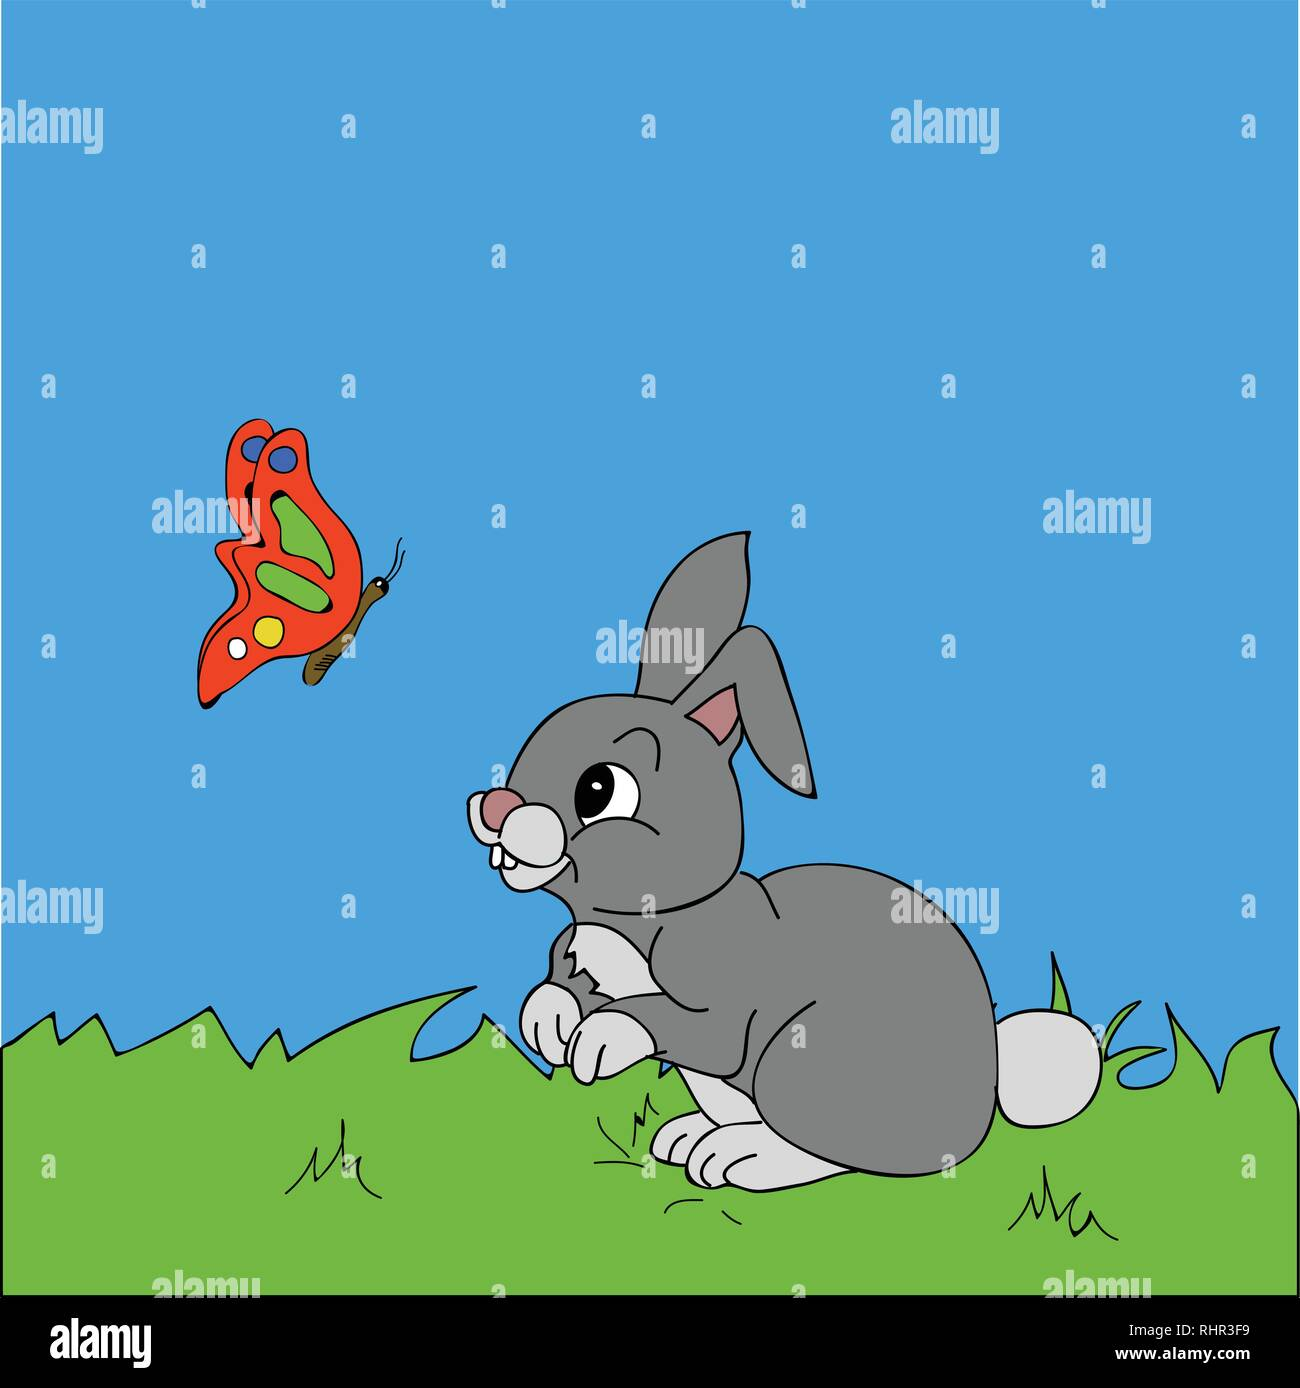 Hand Drawn Cute Rabbit And Butterfly Cartoons Style Over Grass And